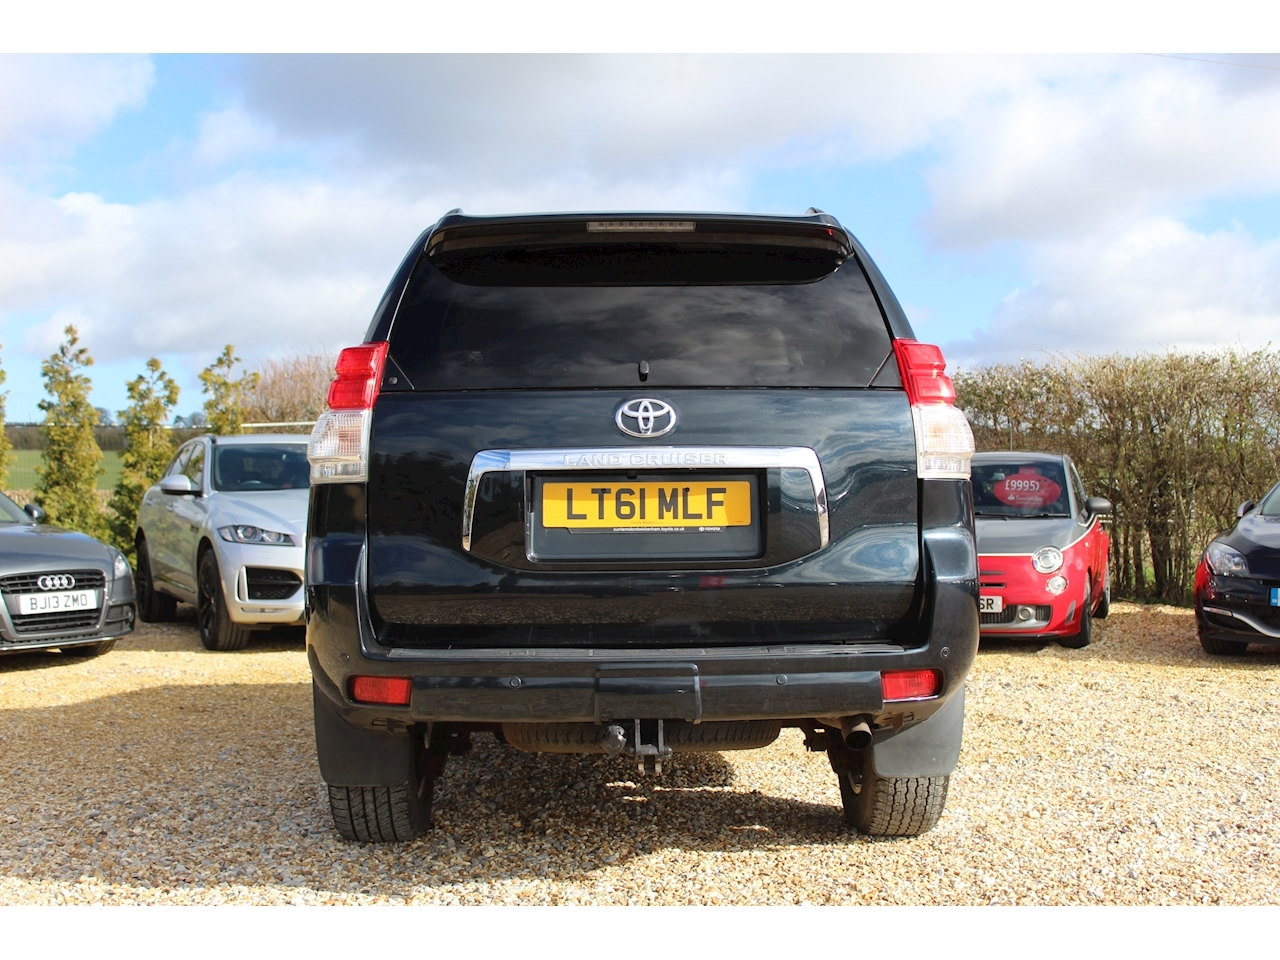 Toyota Land Cruiser D-4D Lc4 Estate 3.0 Automatic Diesel